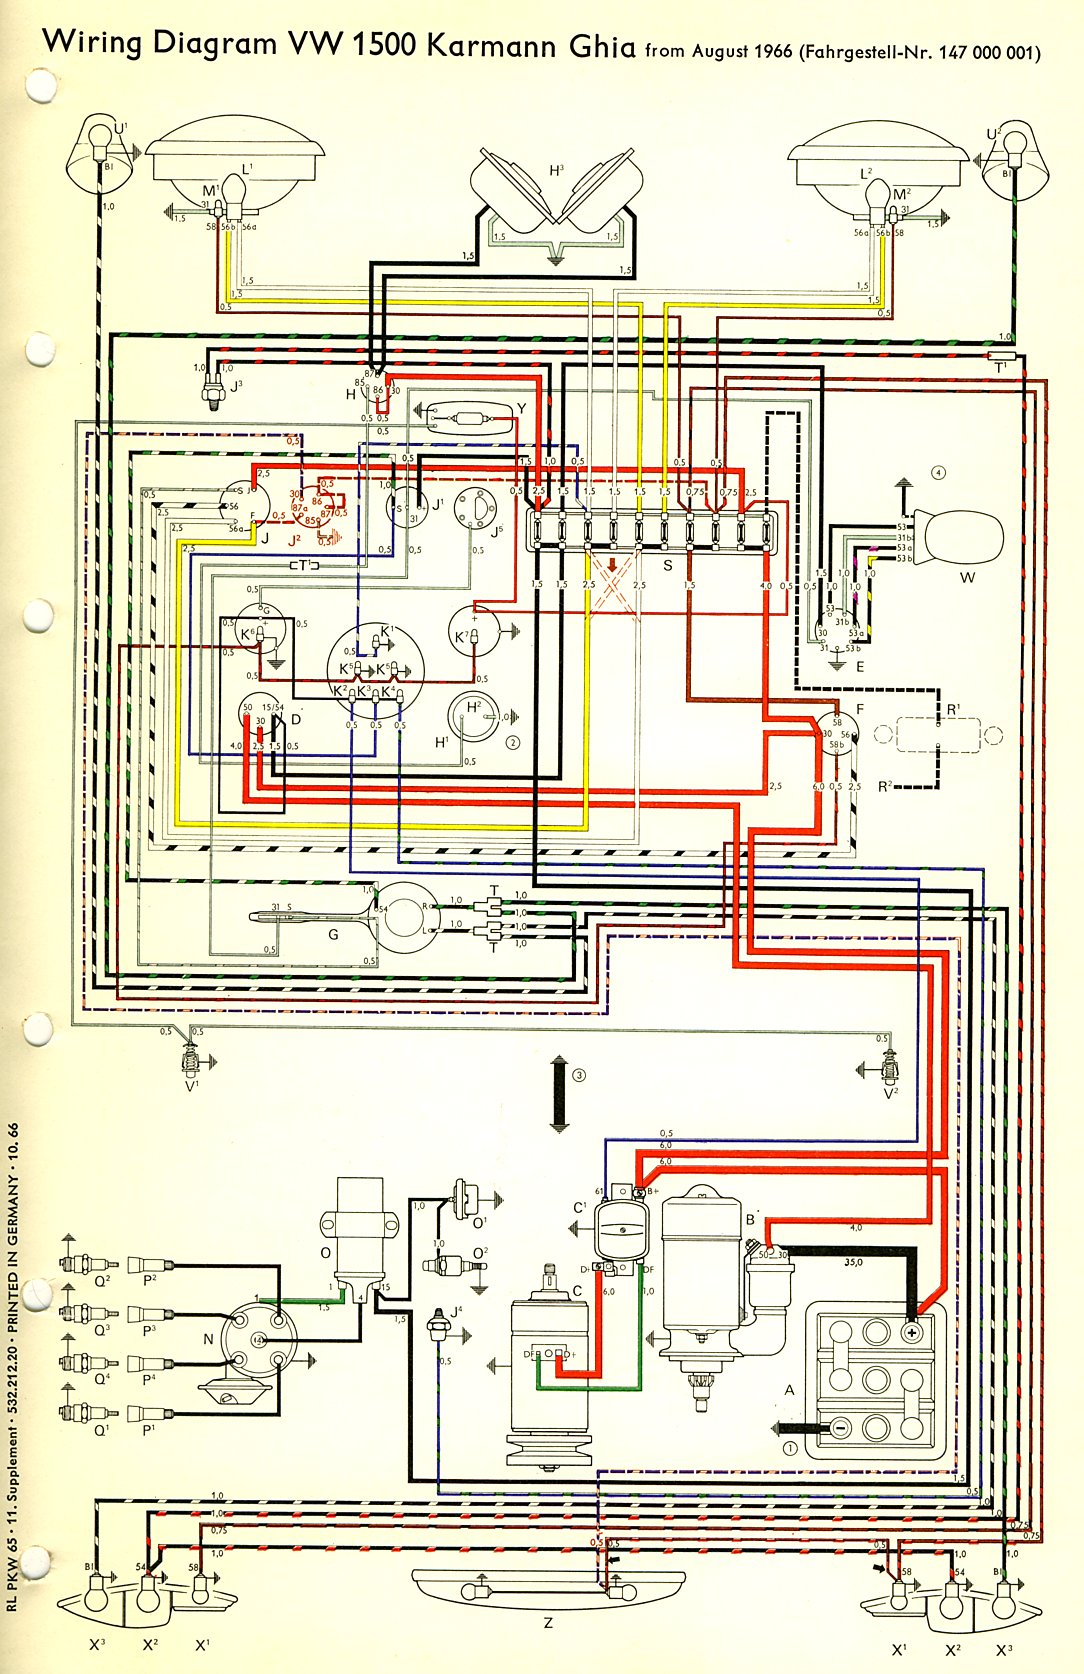 Vw wiring diagram get free image about